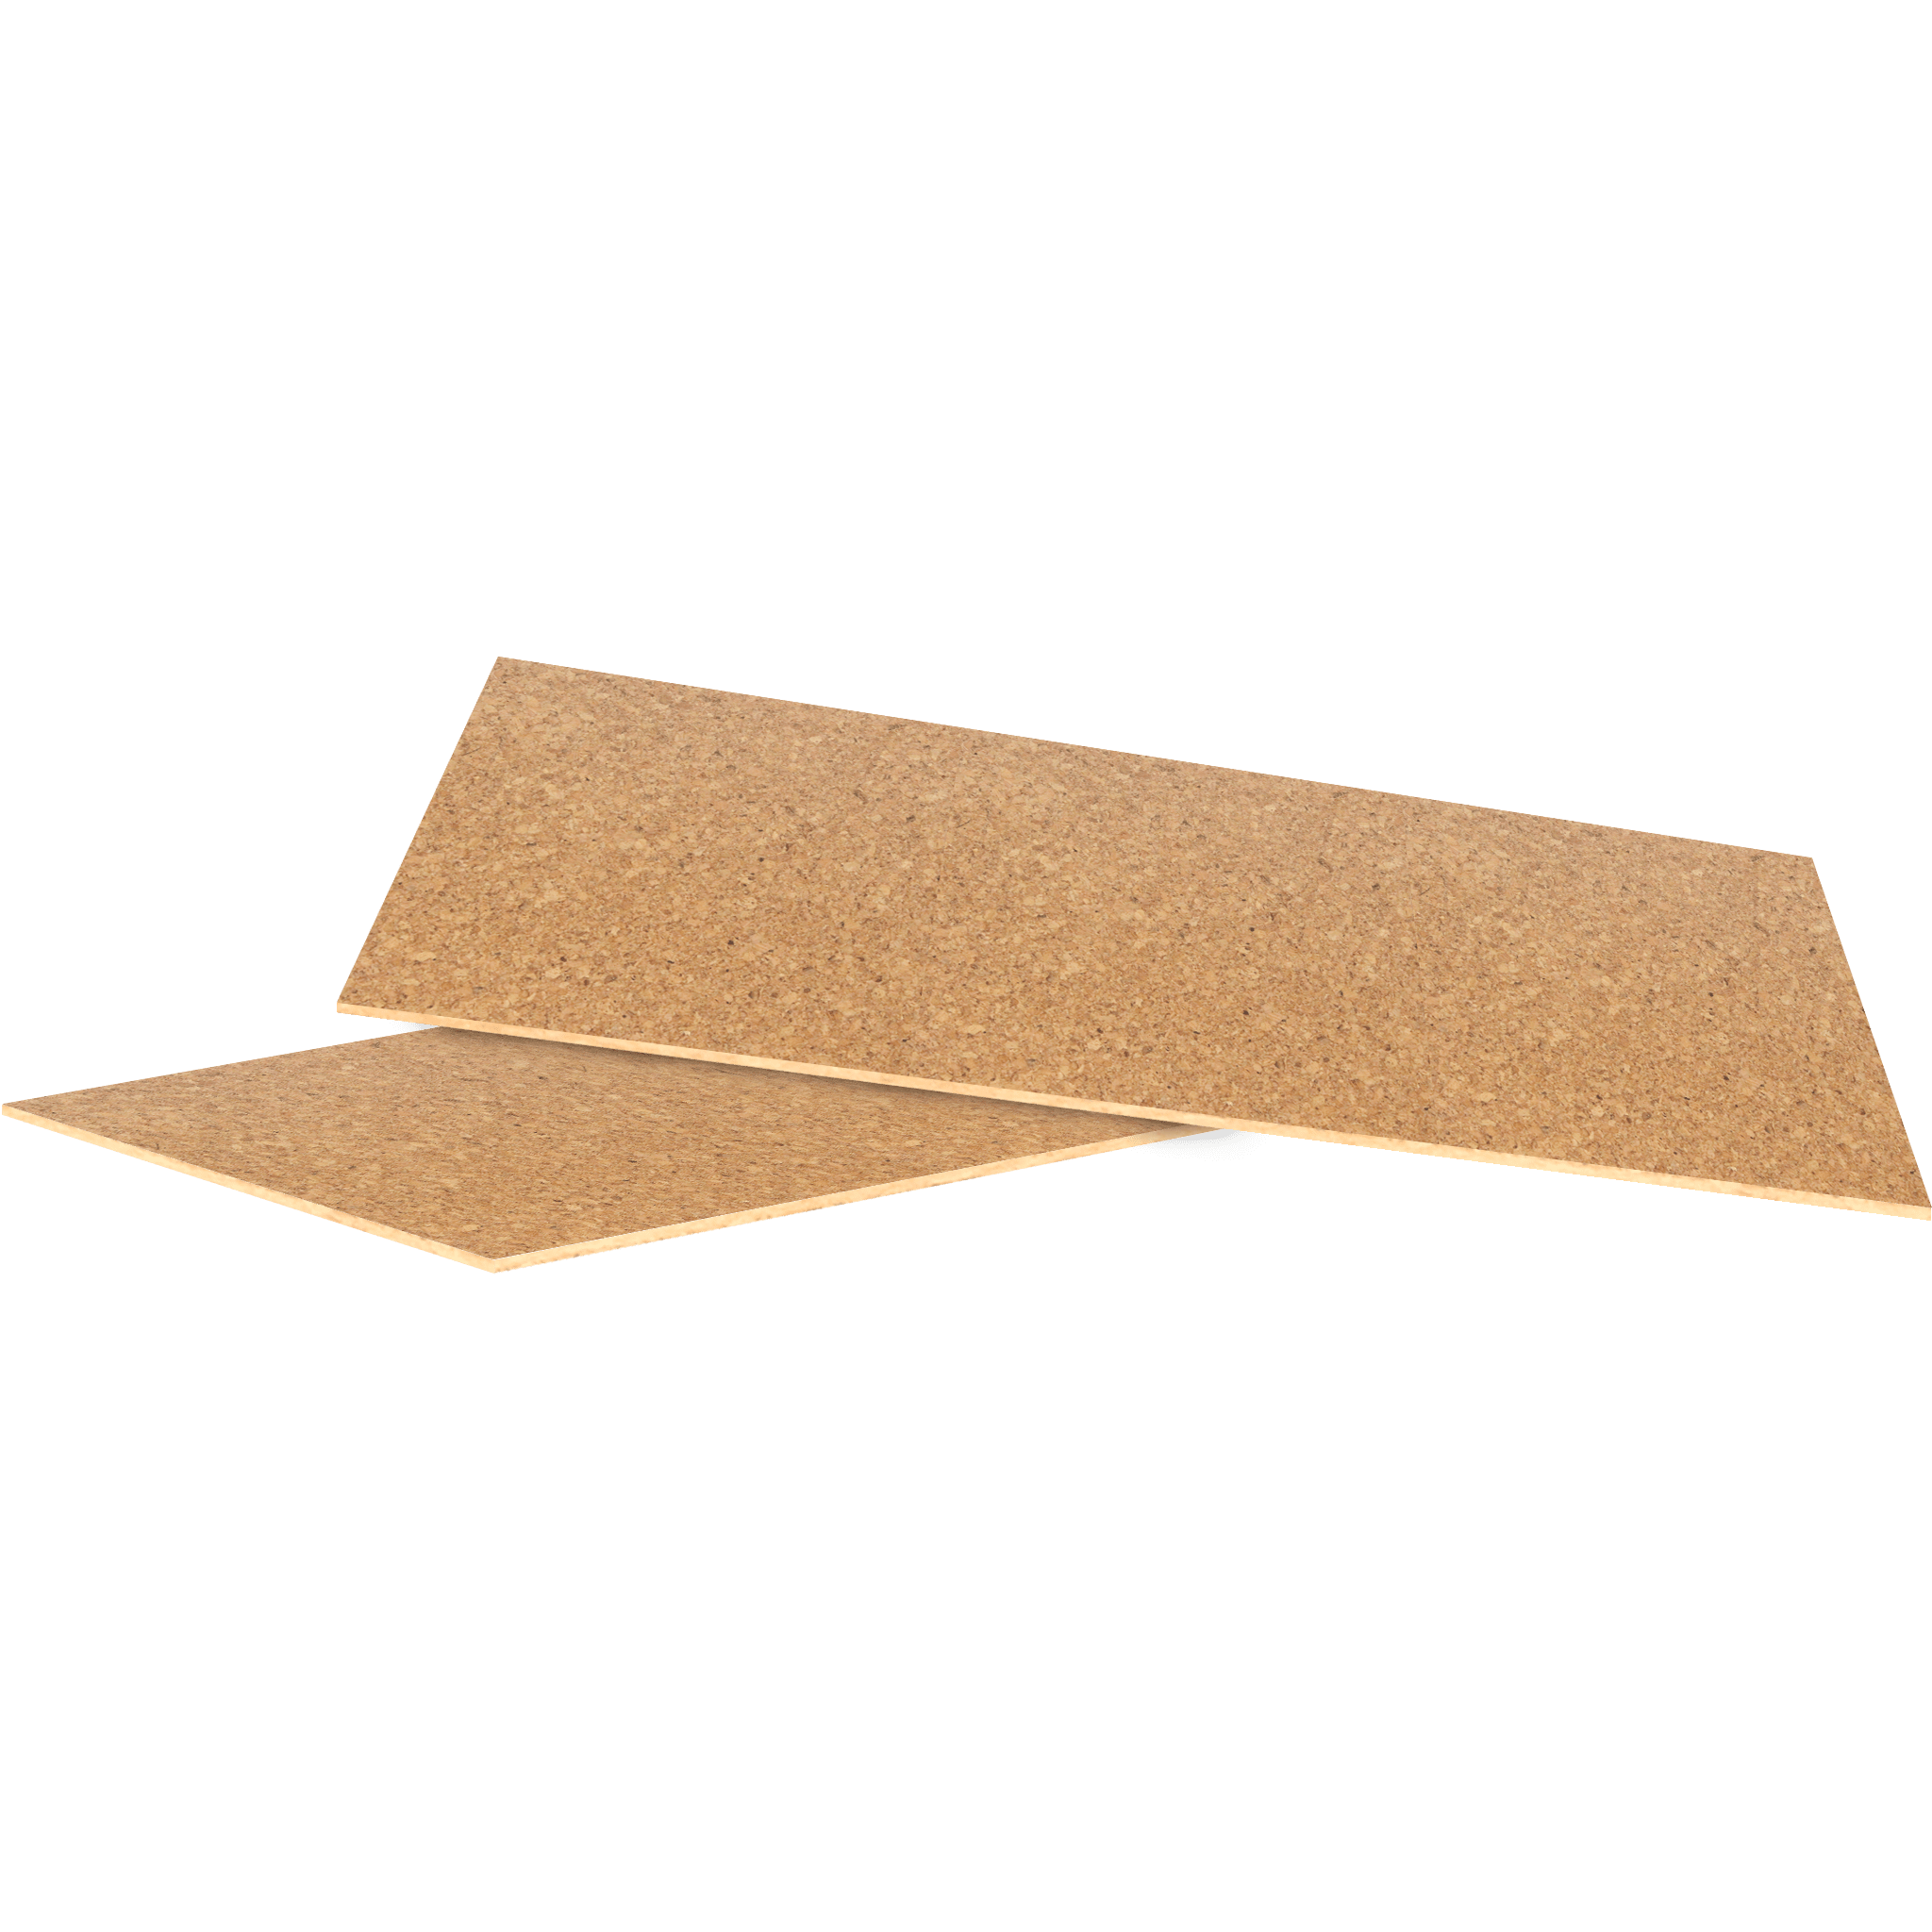 TRADITIONAL HIGH-DENSITY CORK TILE 600 x 300 x 6MM